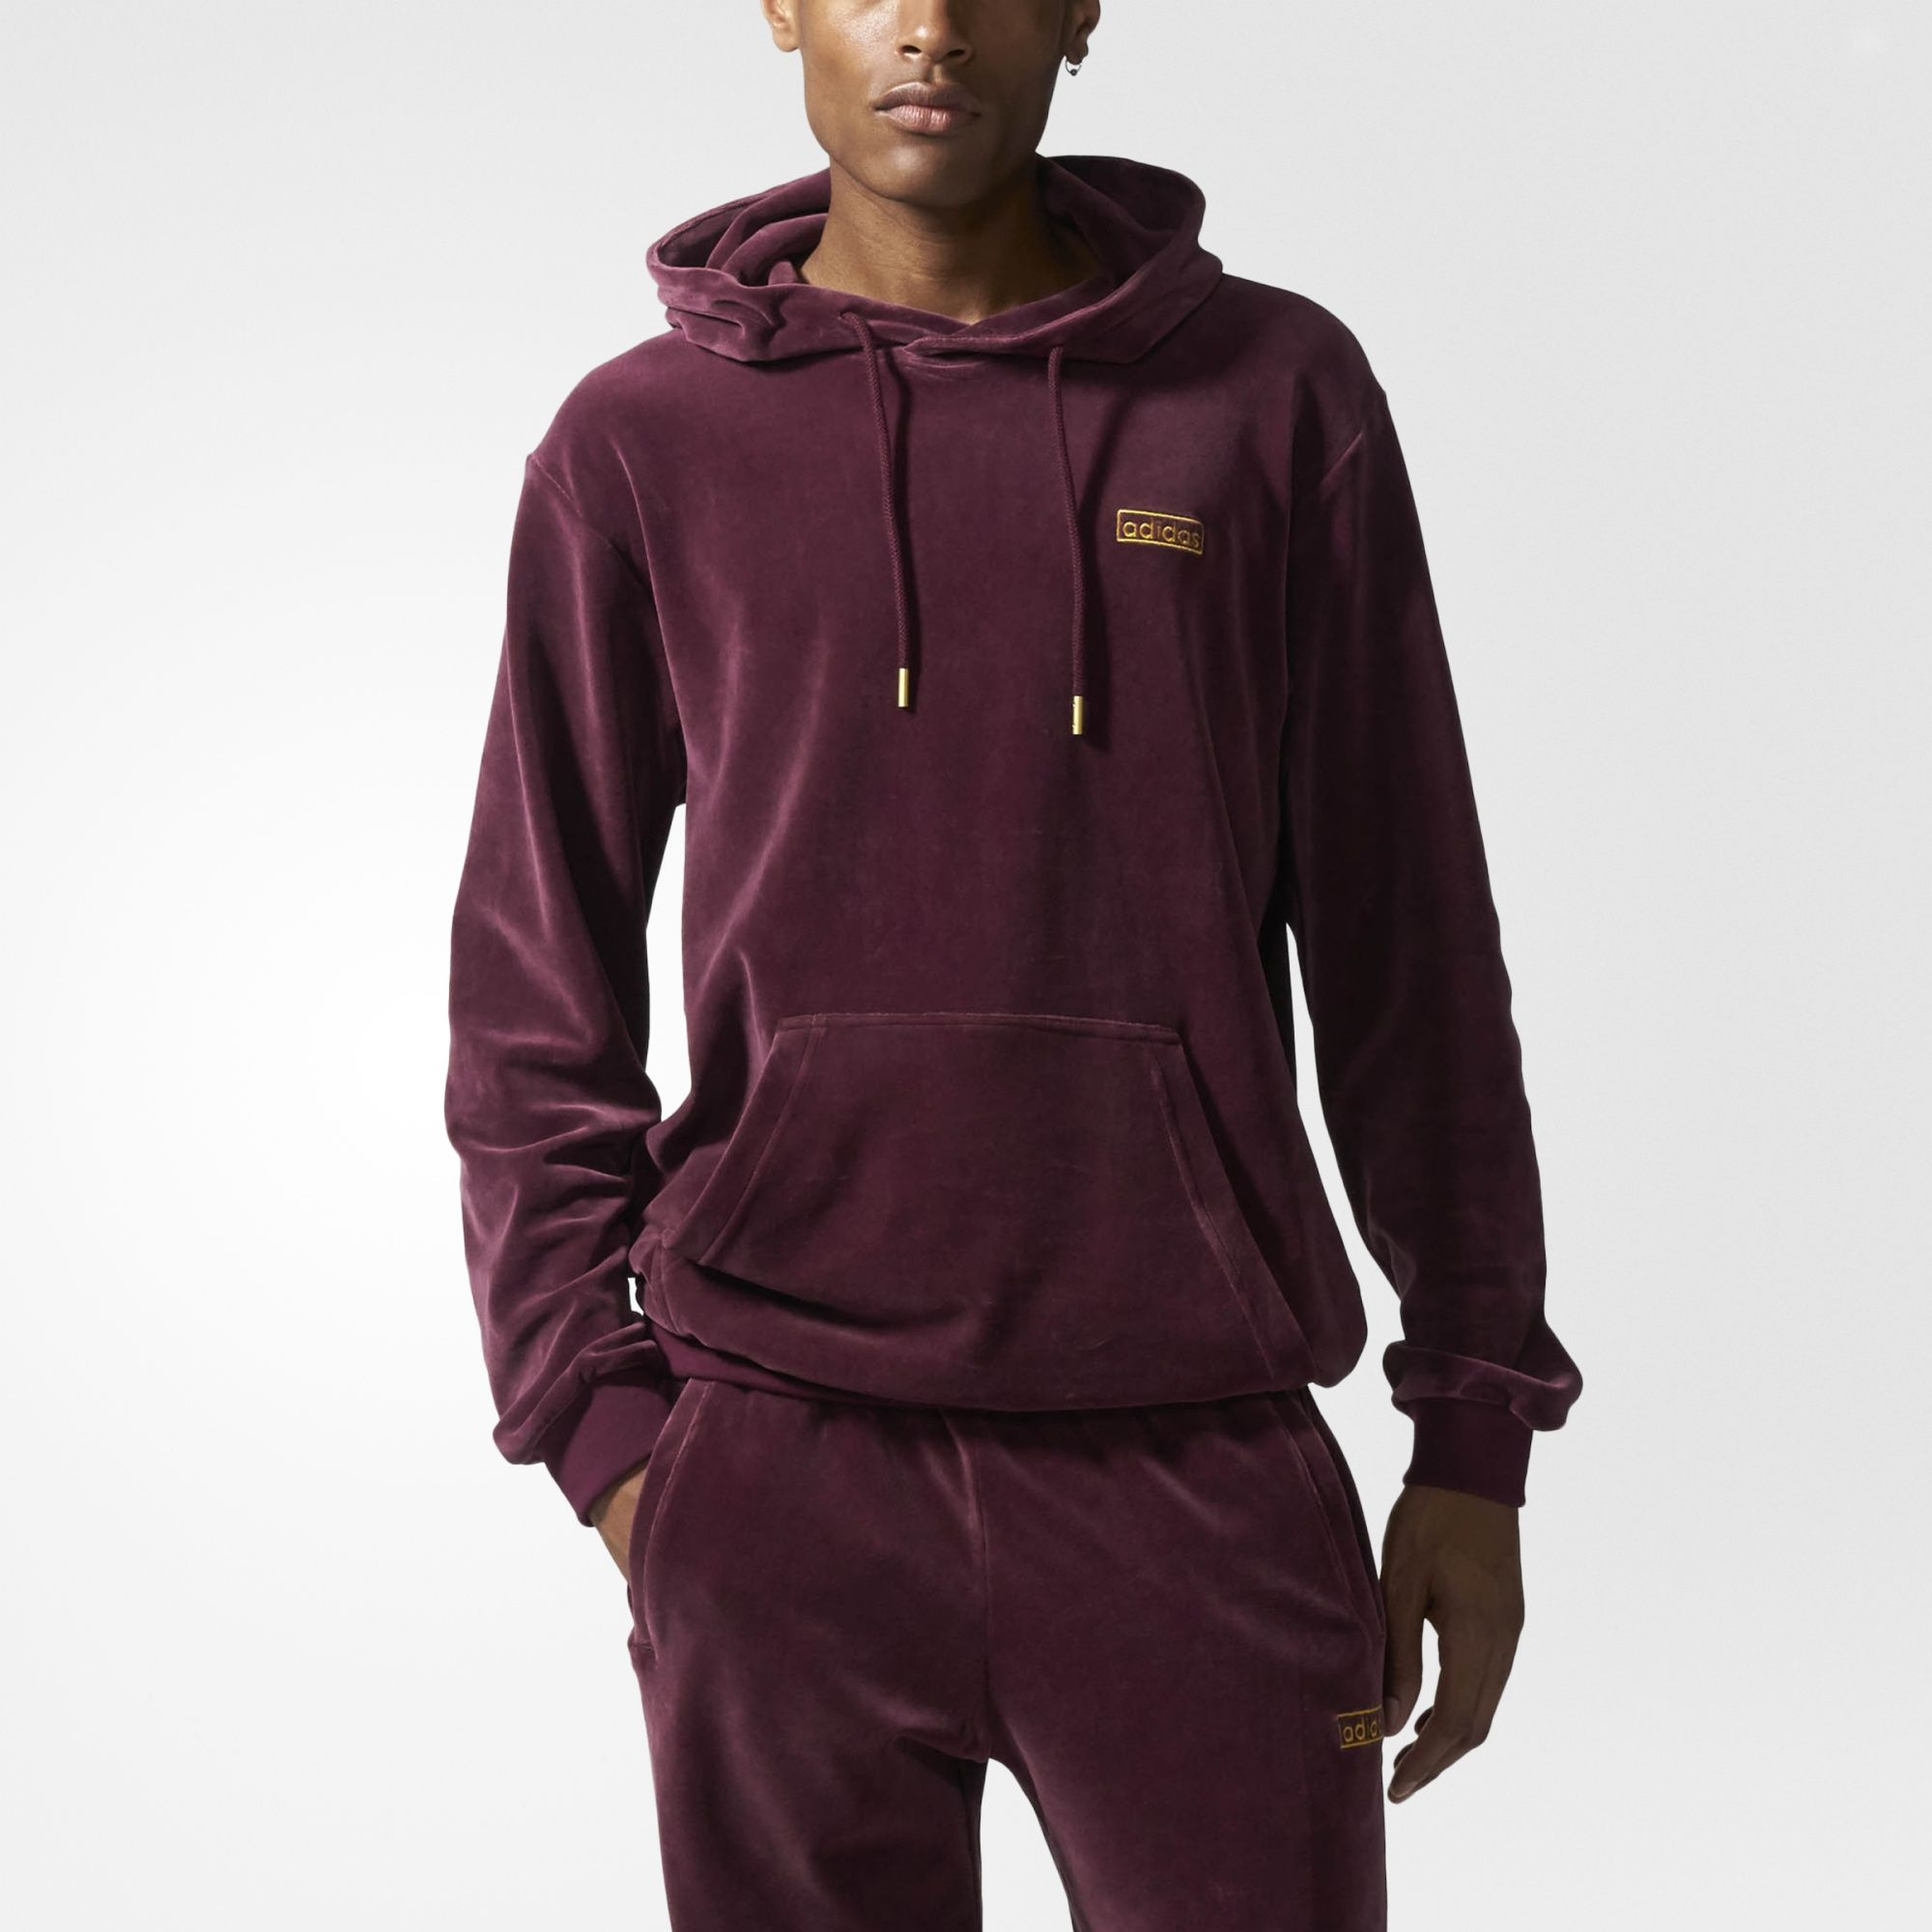 c6186f0498 adidas Velour Hoodie - Brown | adidas US | Clothes | Velvet sweater ...